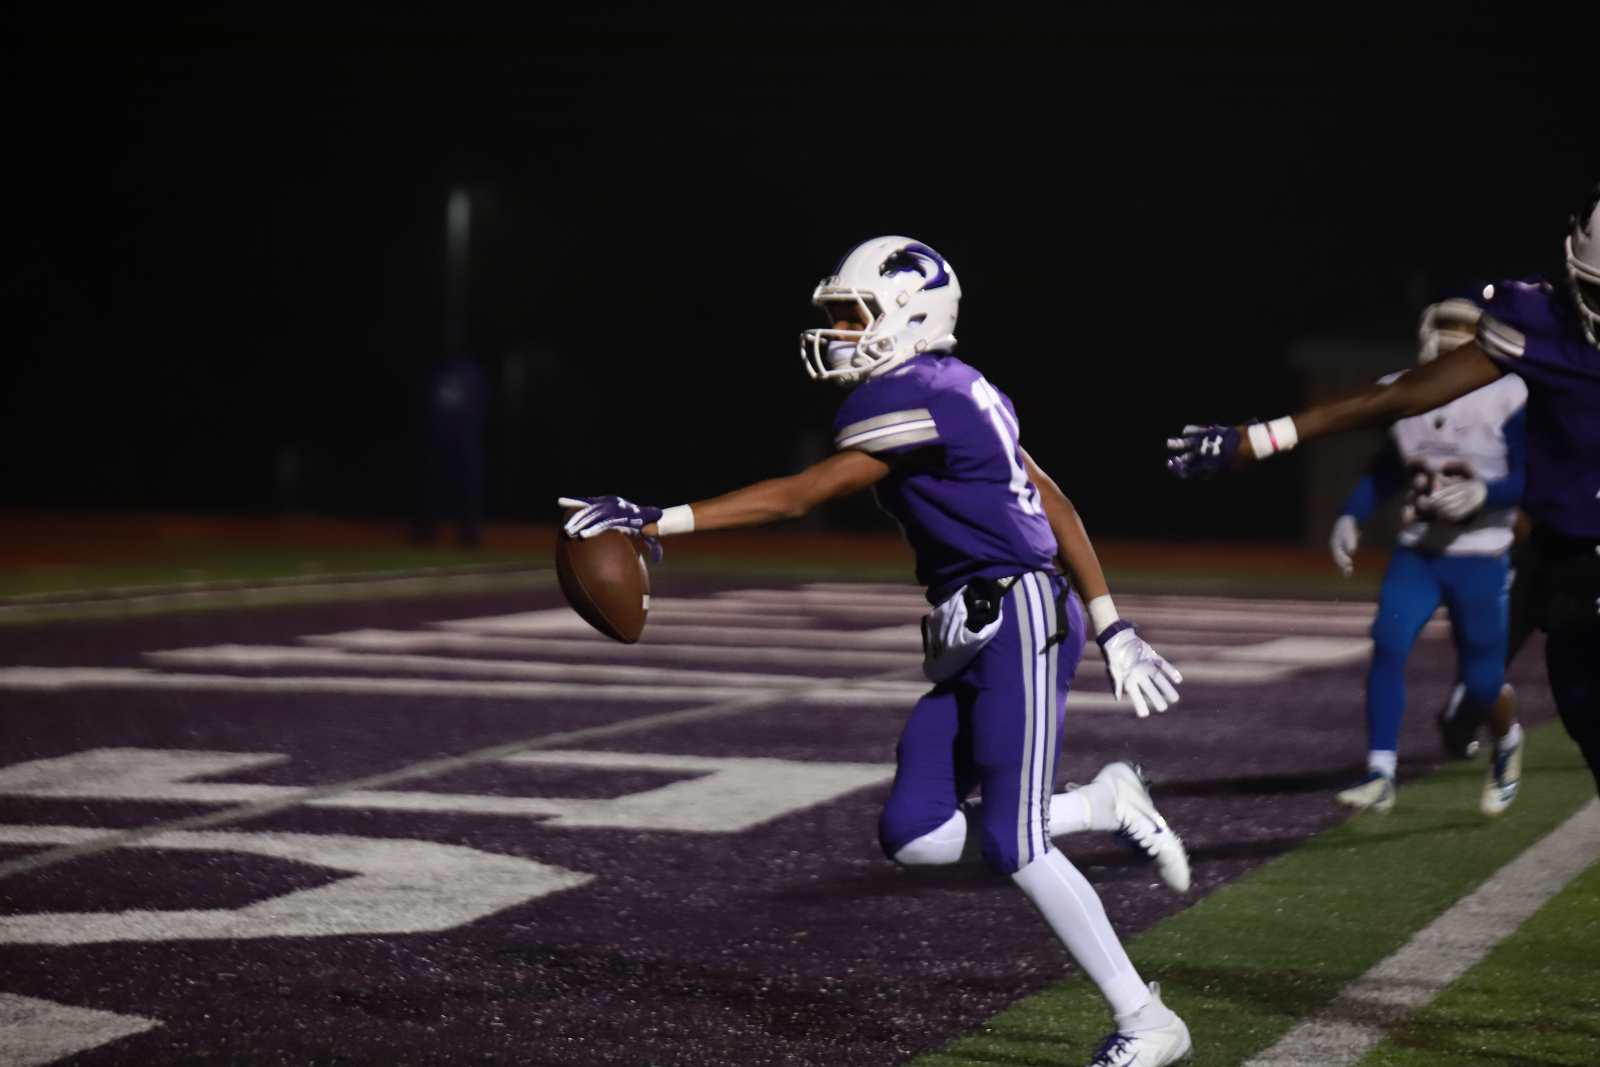 Ridge View Football Defeats Traveler's Rest 76-0 in First Round – Faces Westwood in Round 2 Friday Night